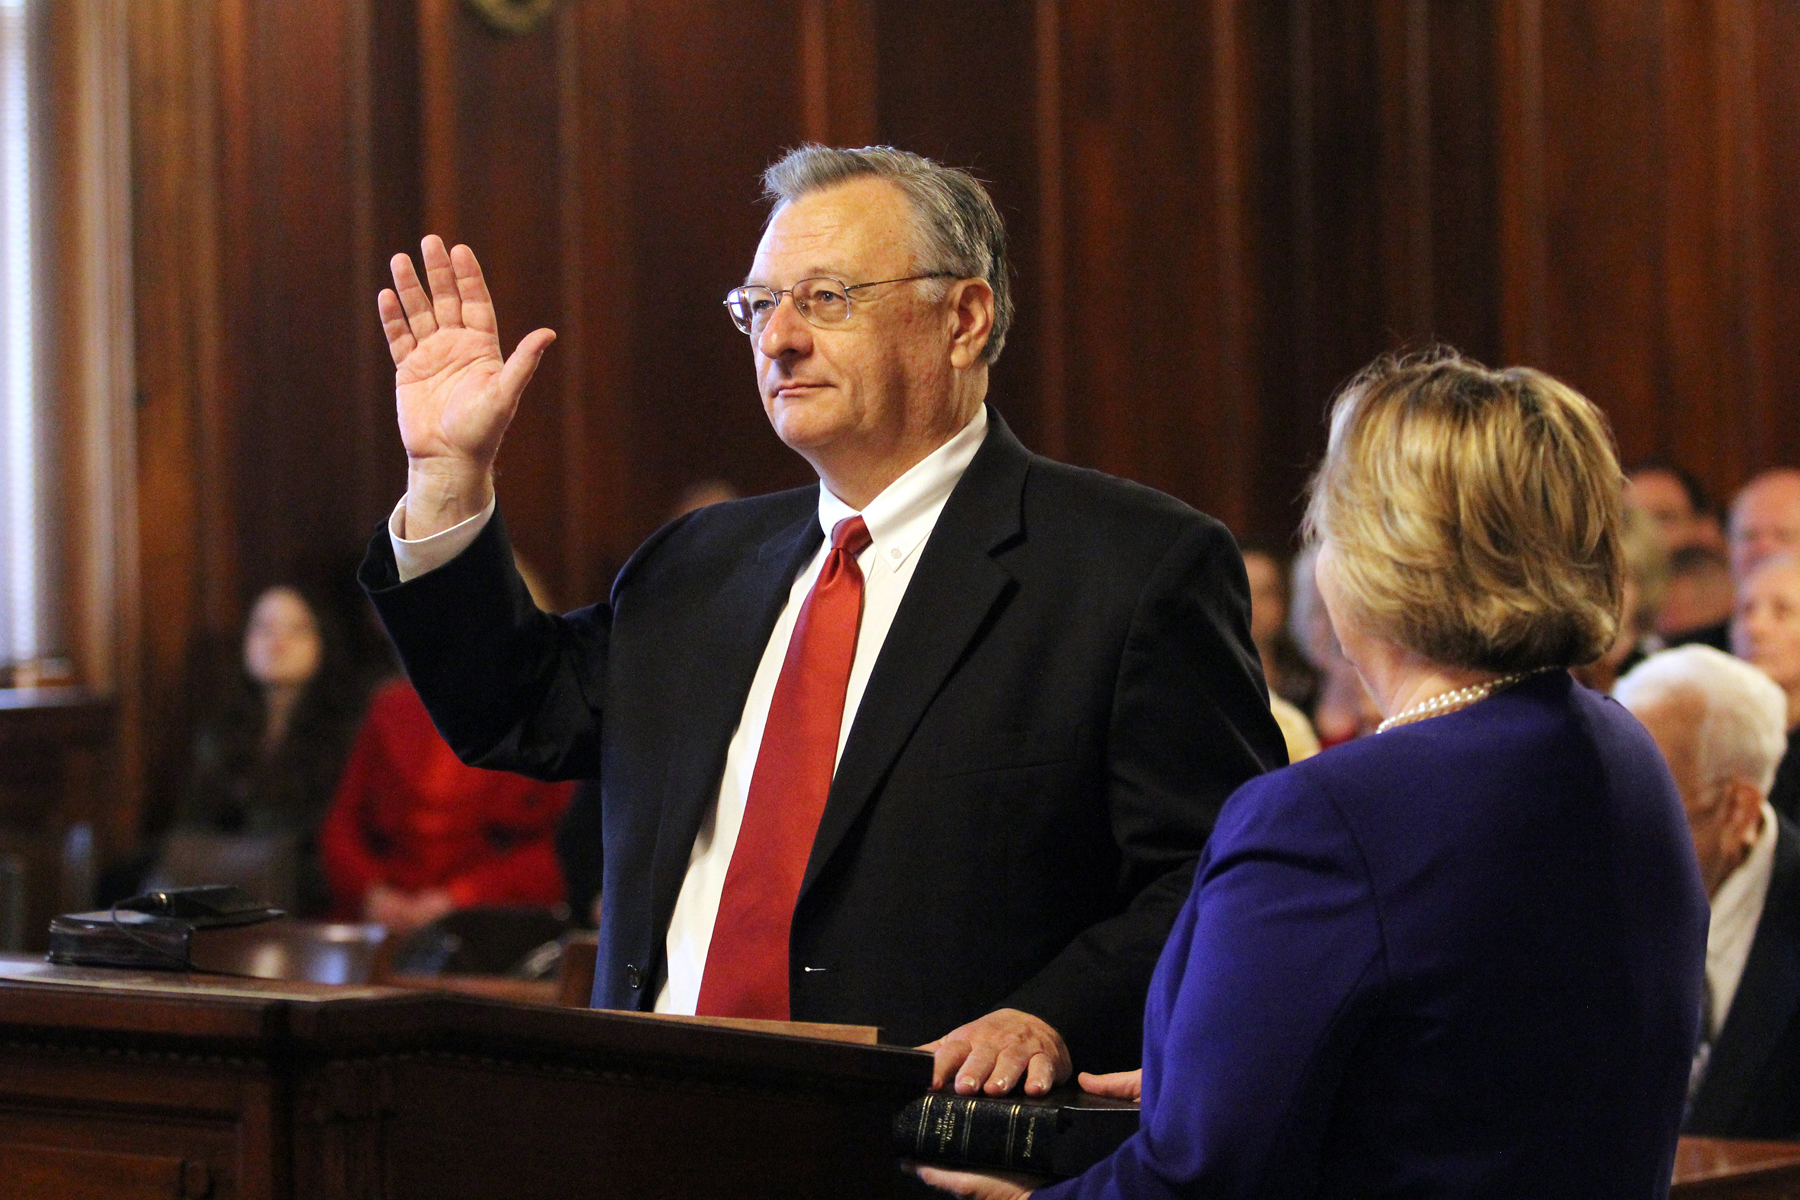 Justice Wright's wife, Jennifer, holds the Bible as he is sworn in by Chief Justice John D. Minton Jr. (Photo provided)